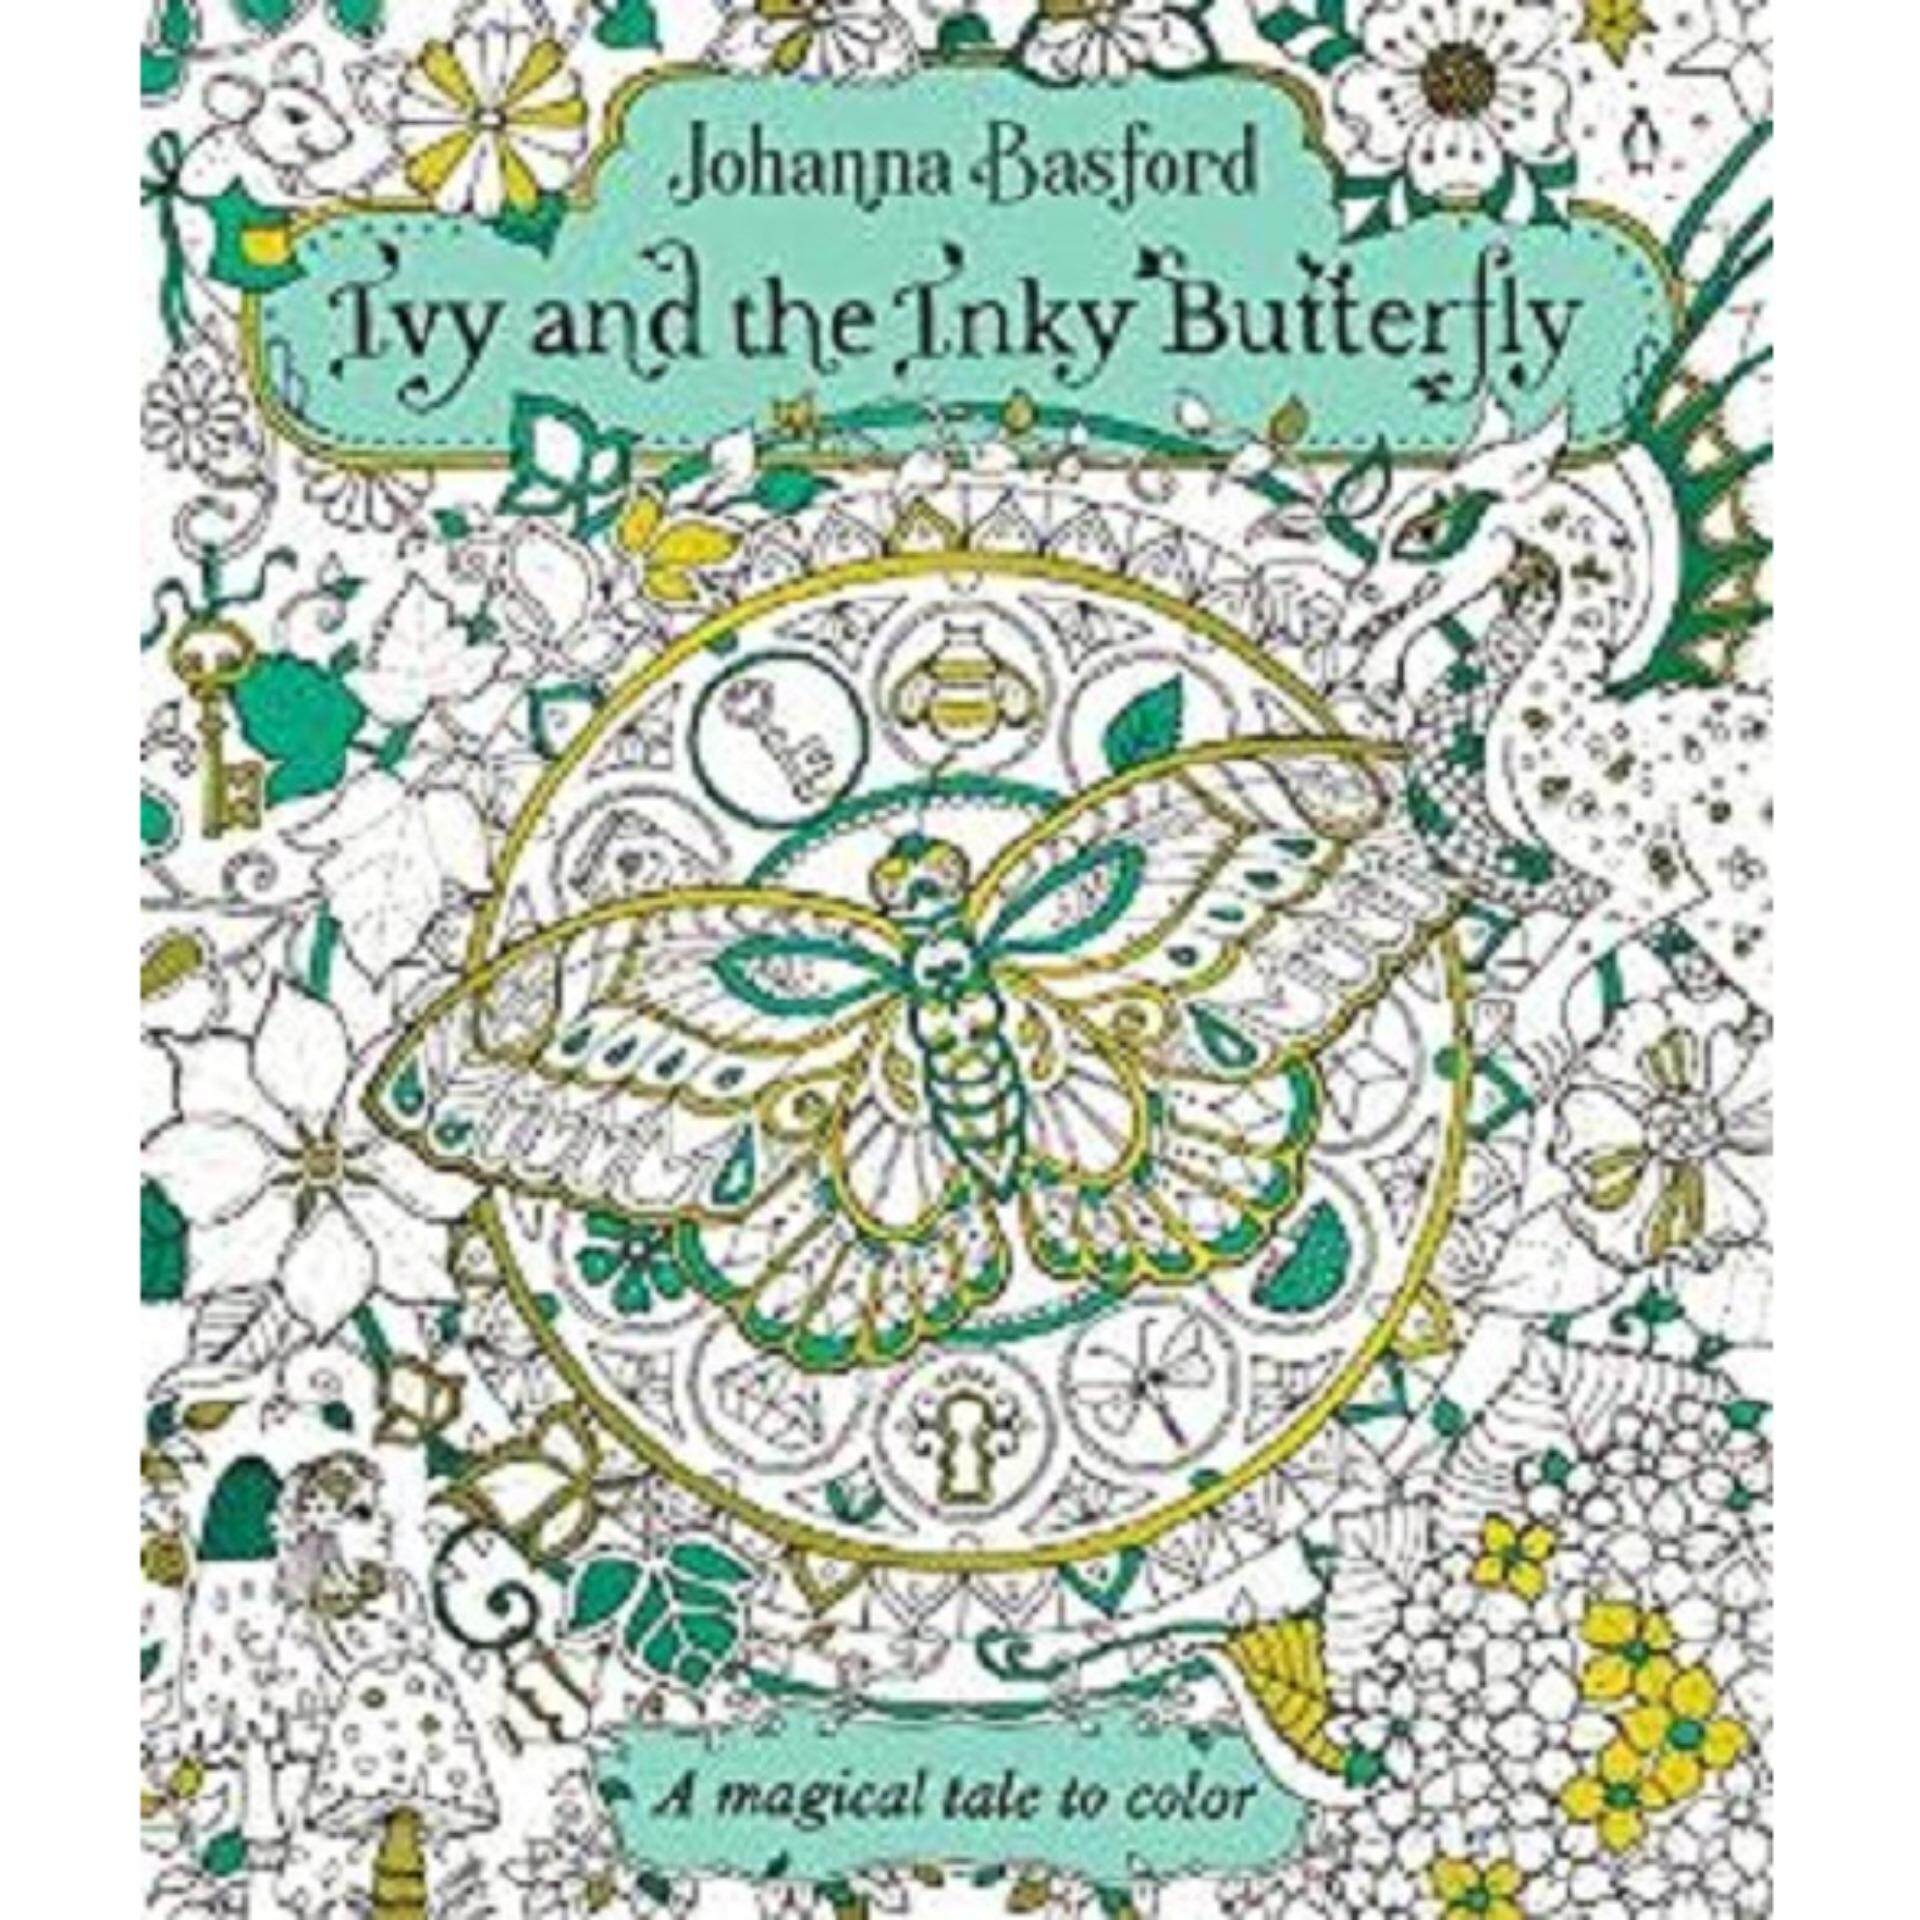 Ivy and the Inky Butterfly: A Magical Tale to Color  ISBN : 9780143130925 By Author Basford, Johanna